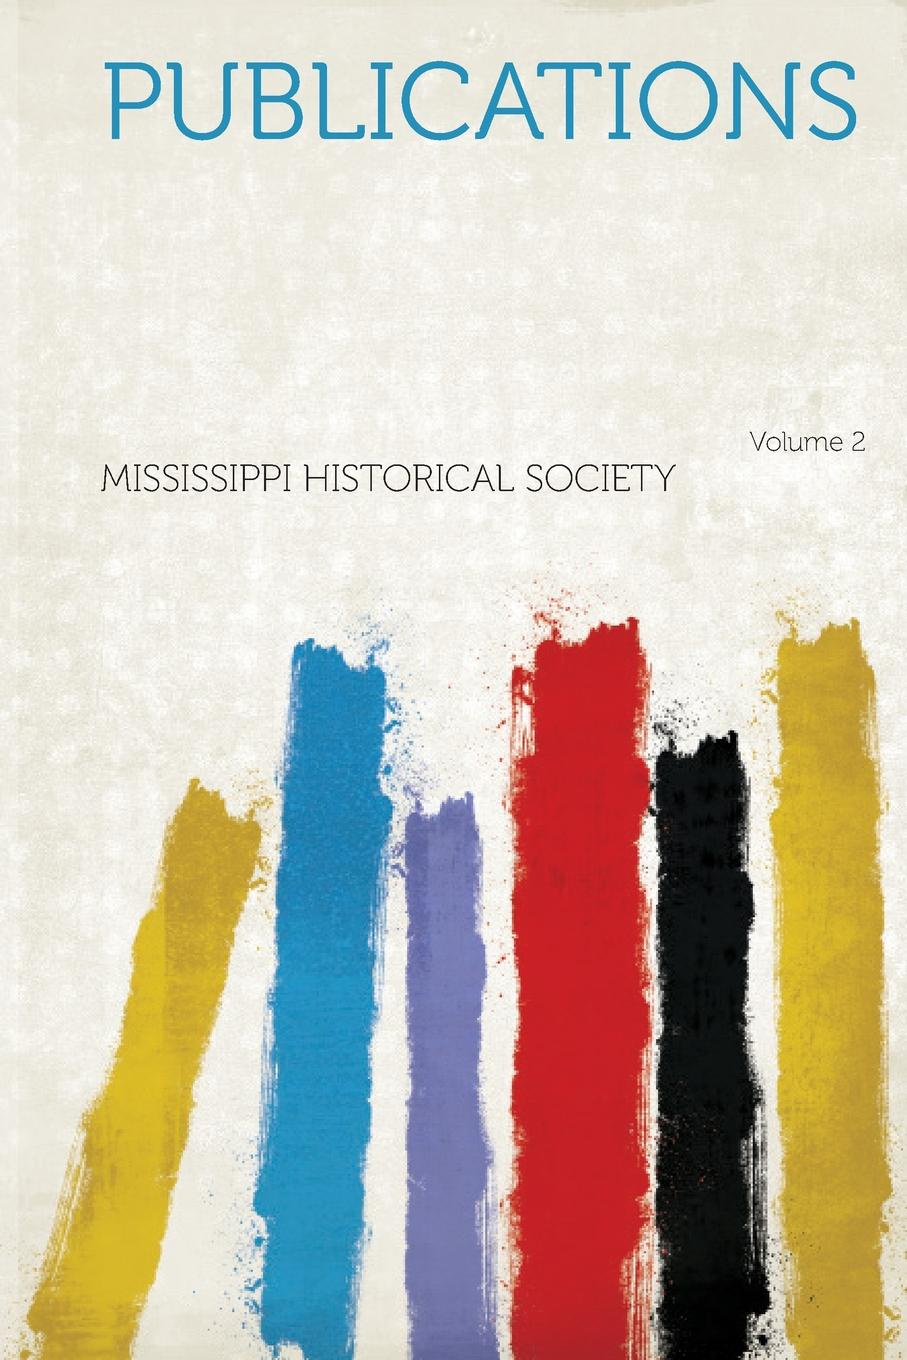 Mississippi Historical Society Publications Volume 2